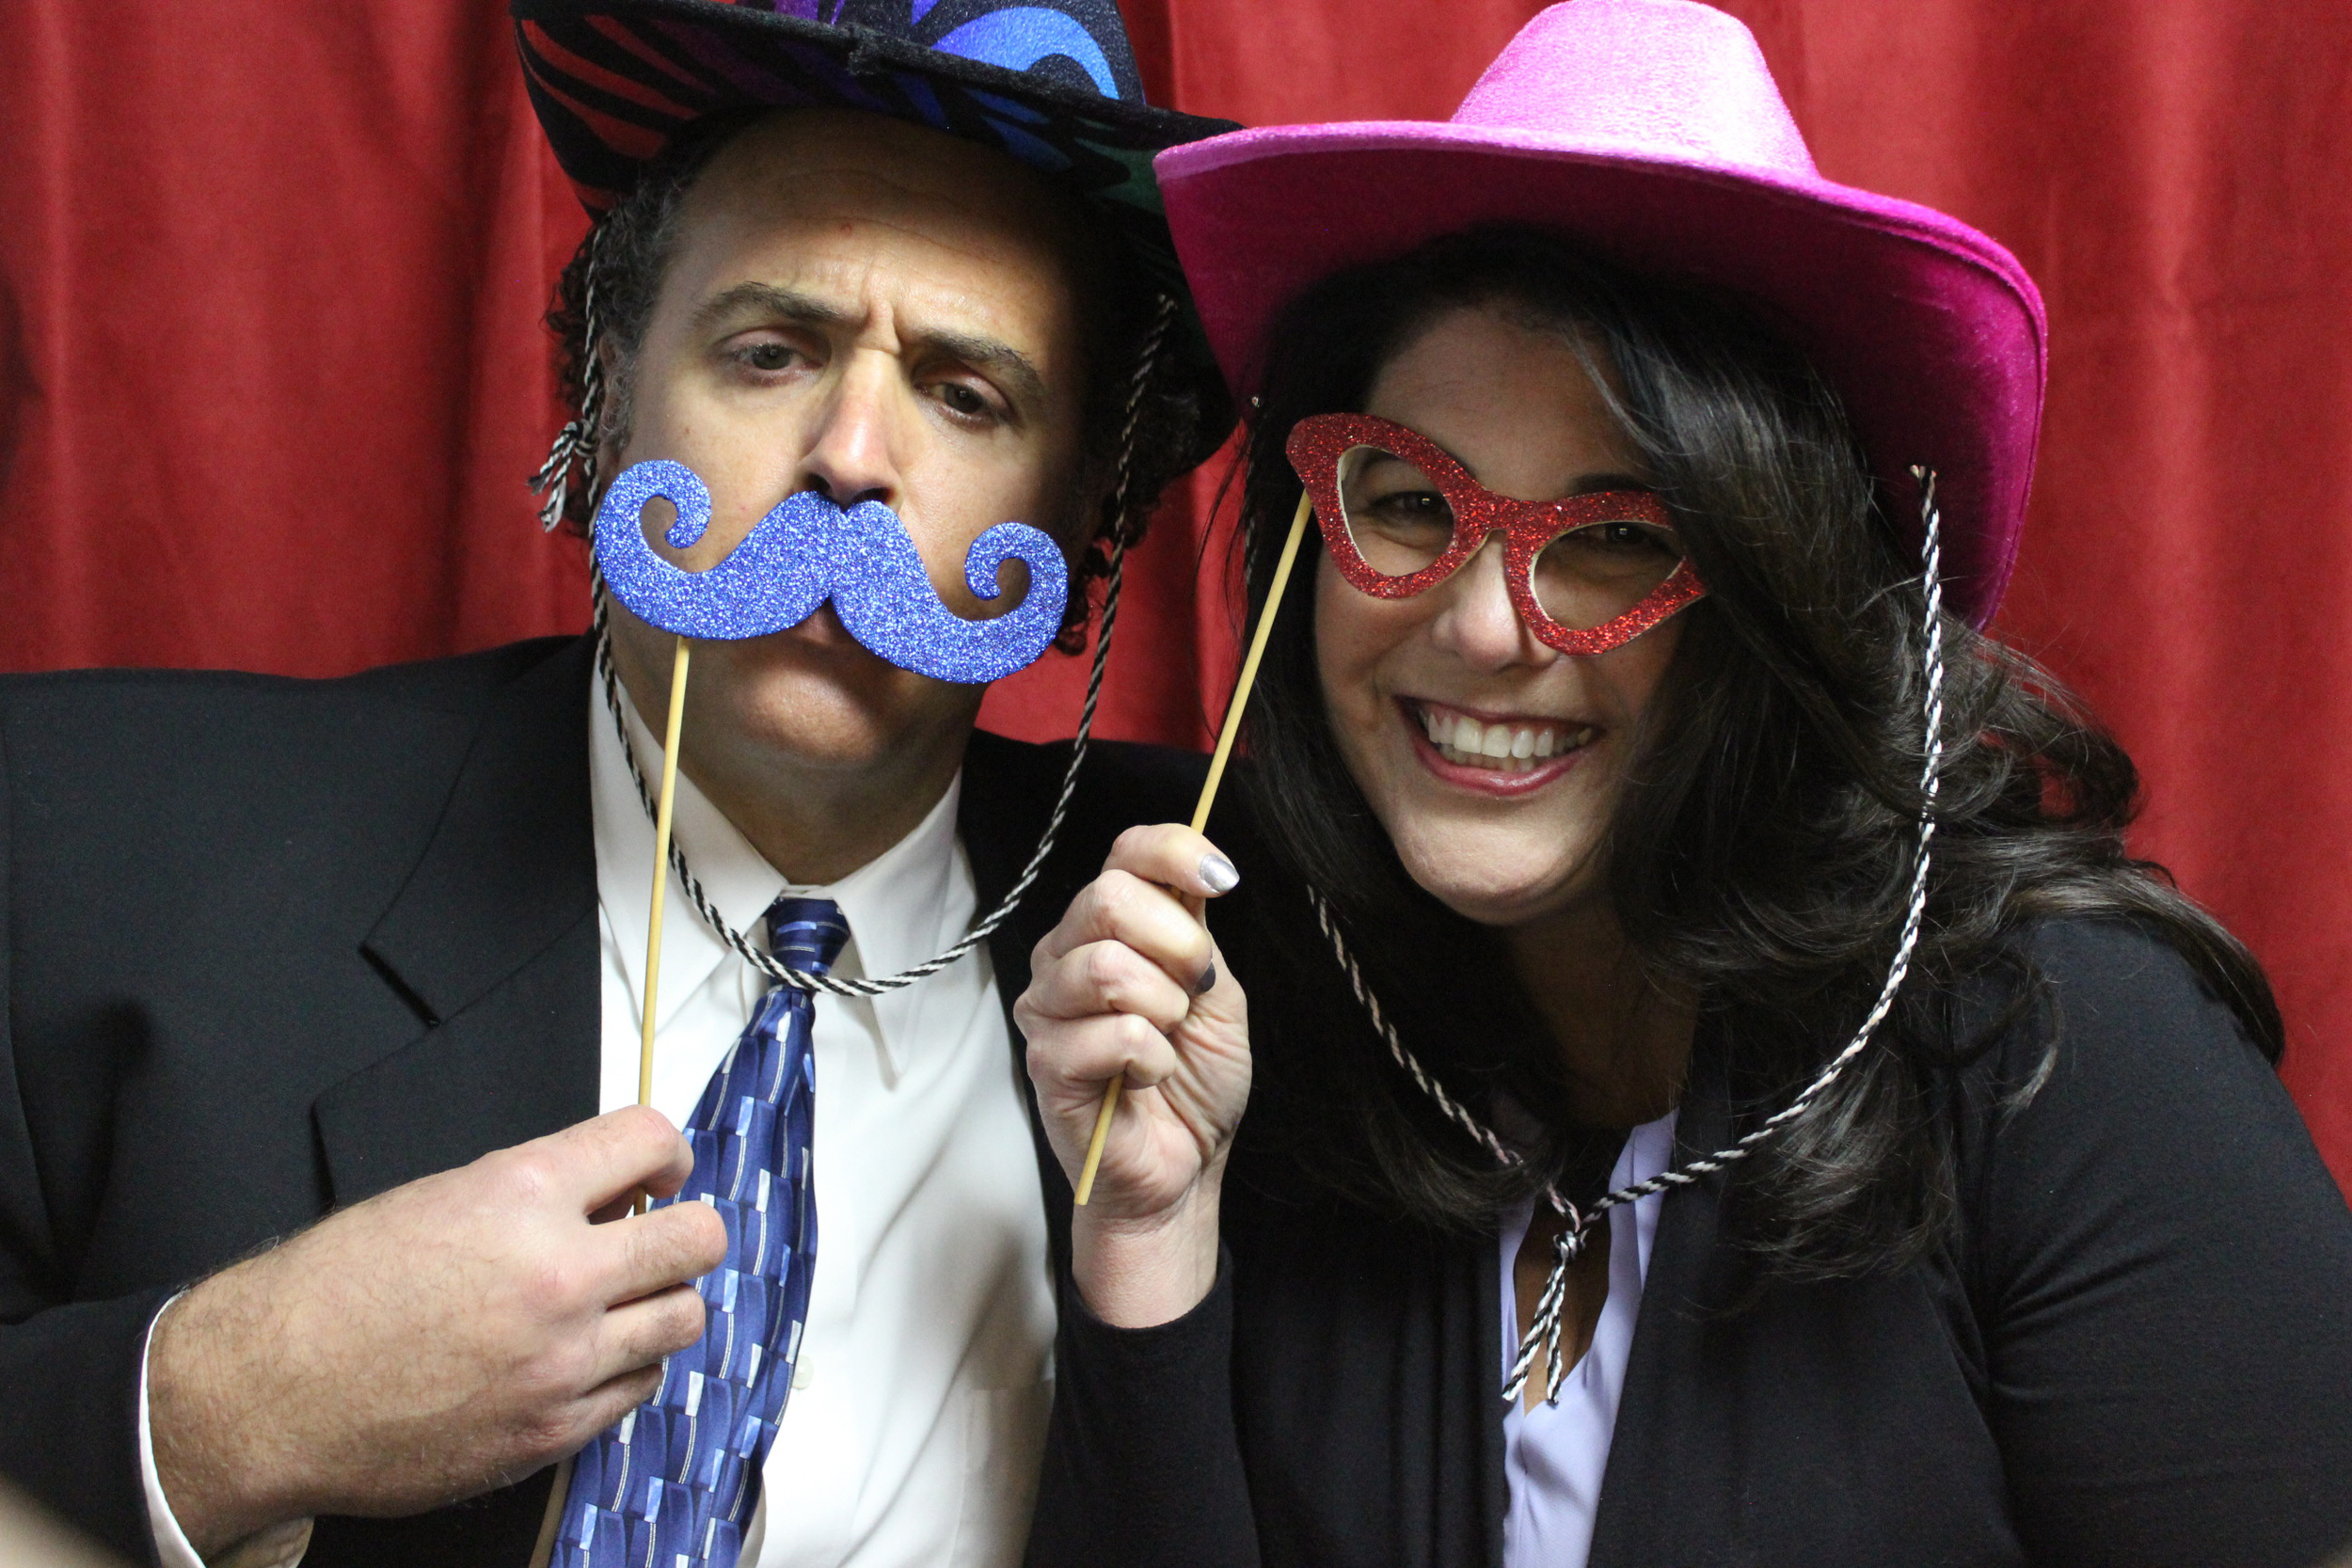 Ann-Marie & Maurice Photo Booth Wedding (211).jpg